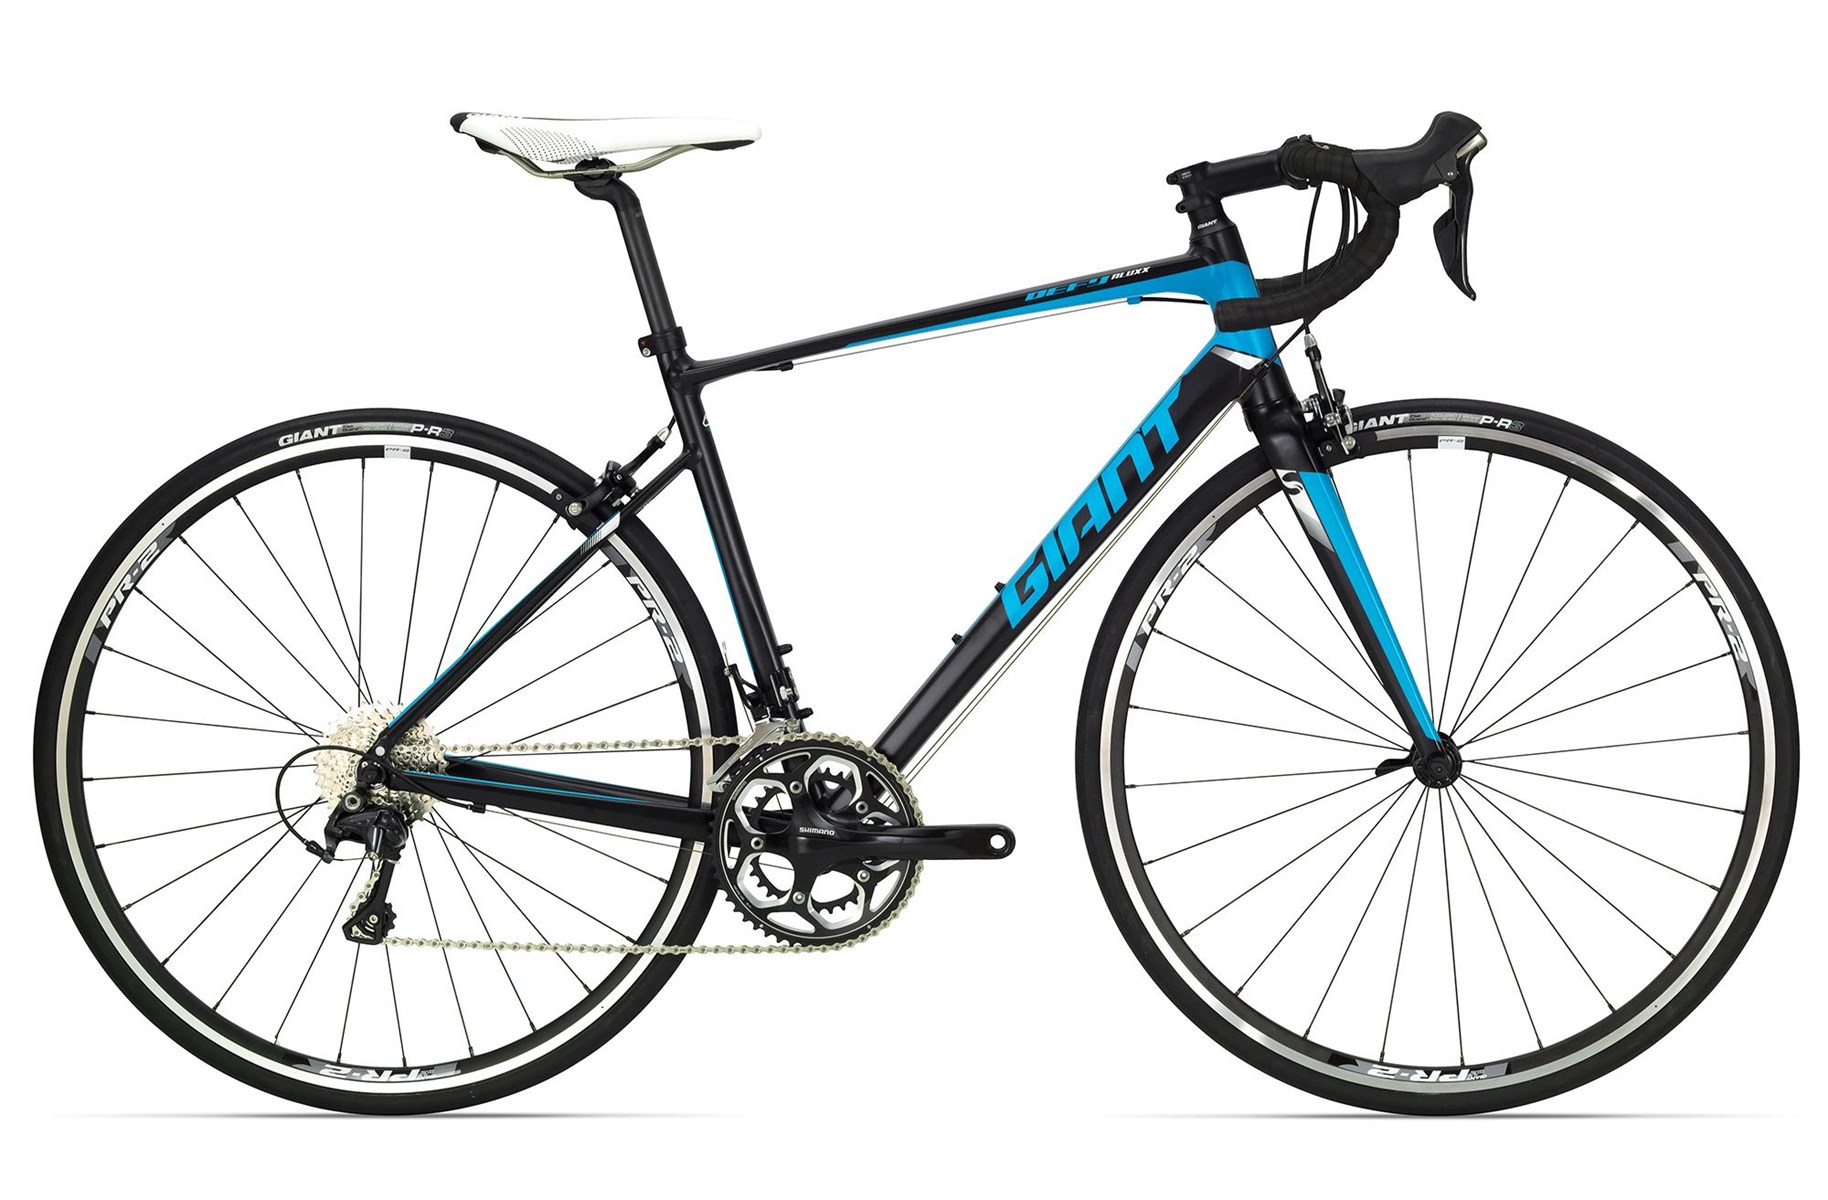 Giant Defy 0 2016 road bike black/blue £799.20